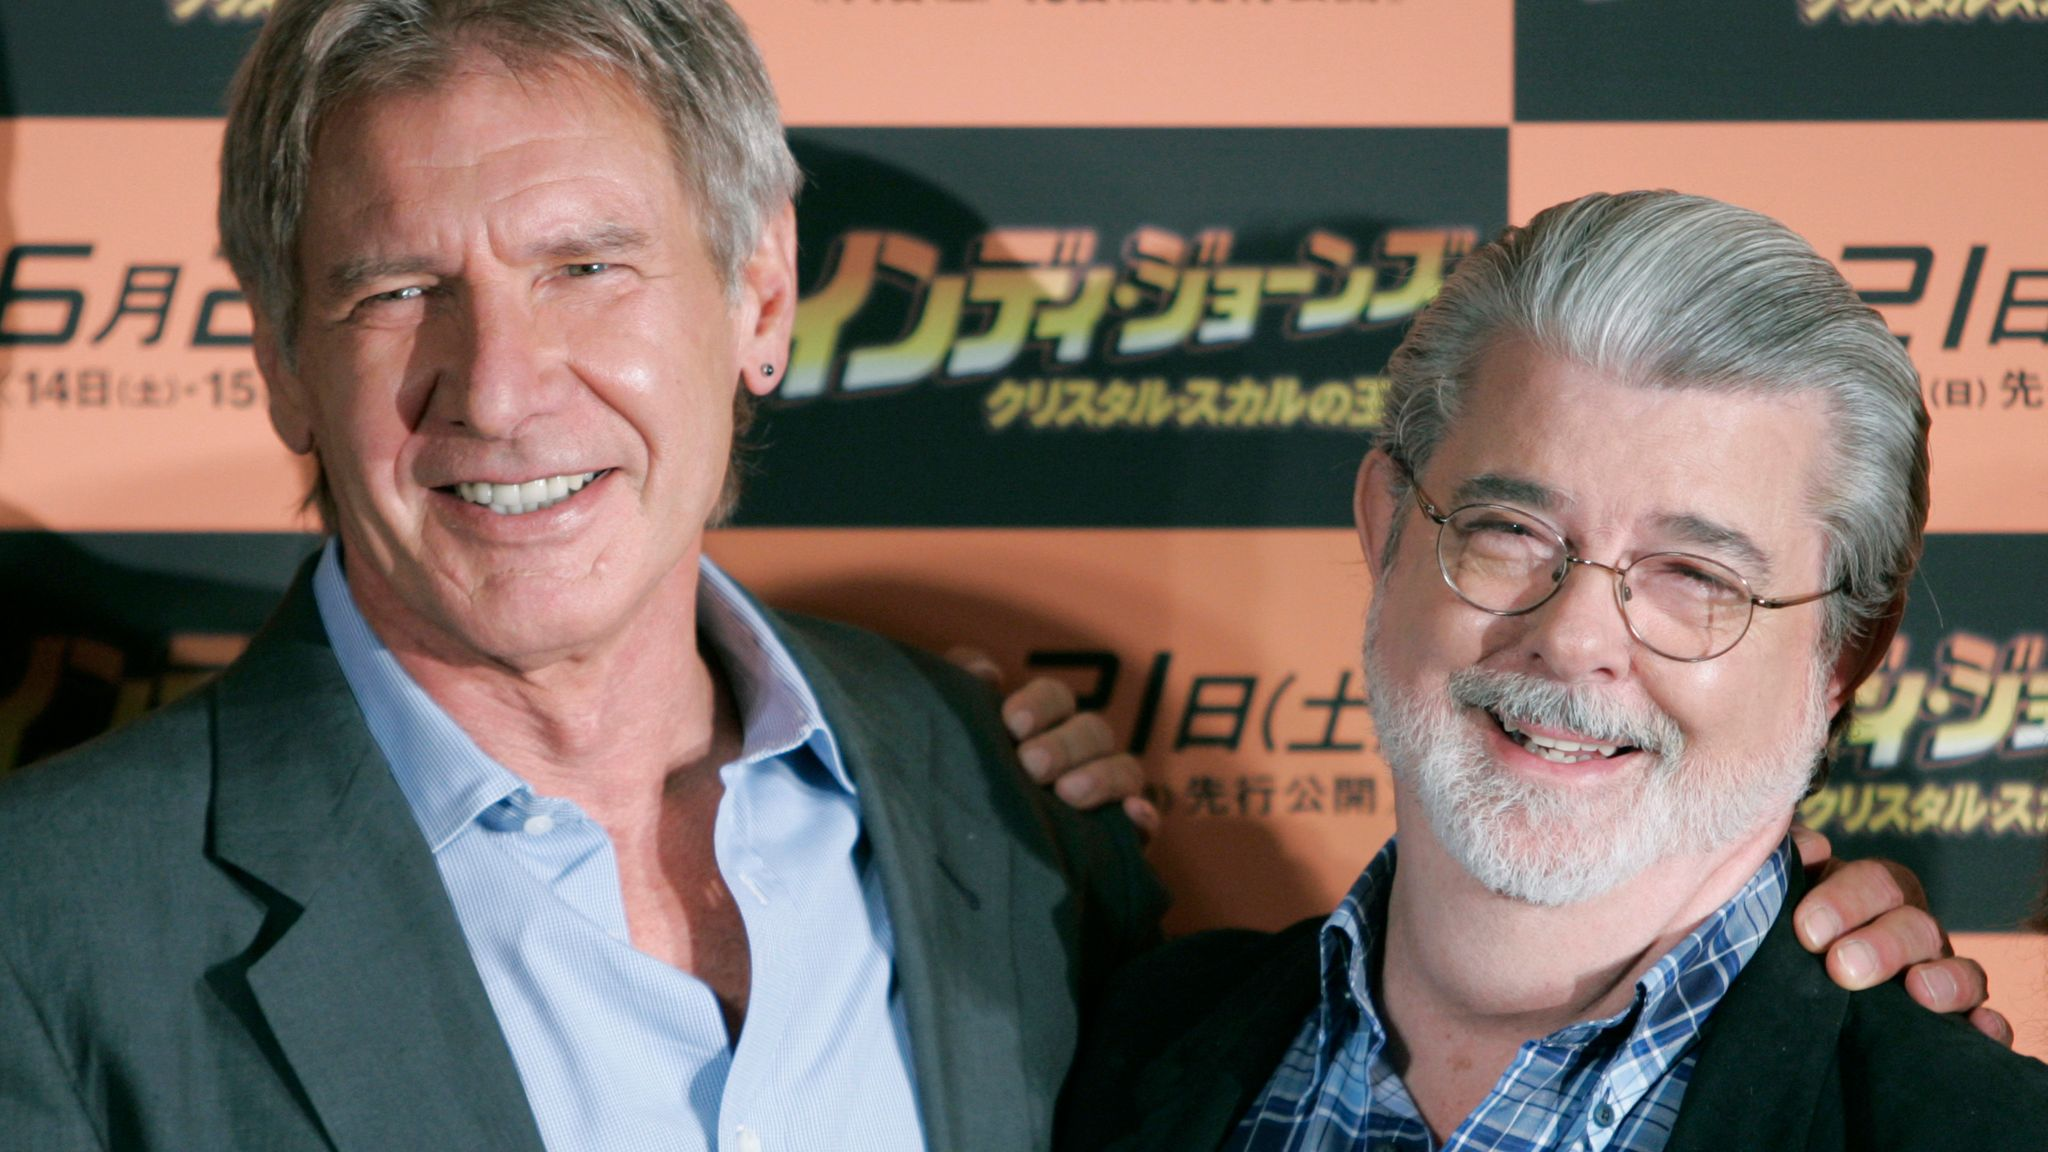 Harrison Ford, left, with Indiana Jones co-creator George Lucas